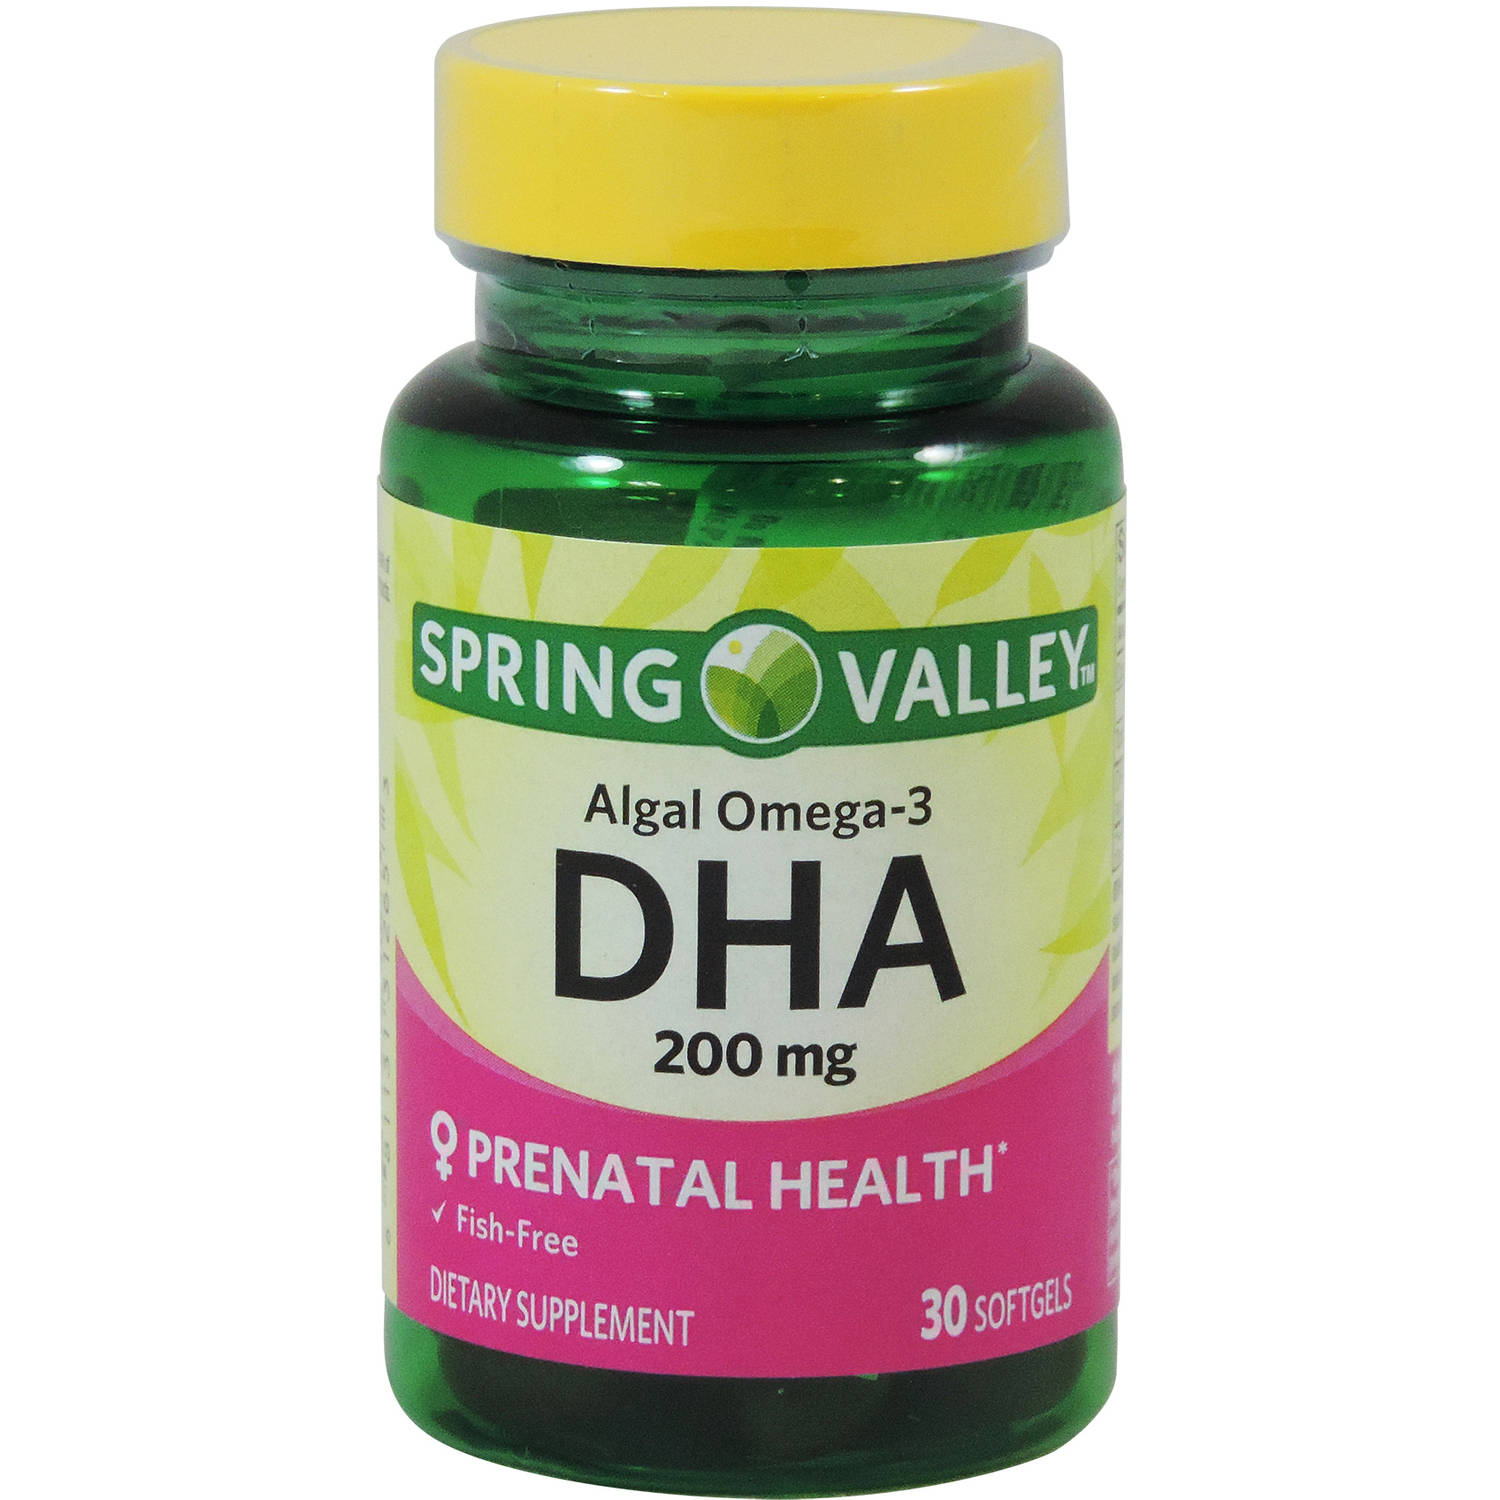 Spring Valley Algal Omega-3 DHA, 200mg, 30ct